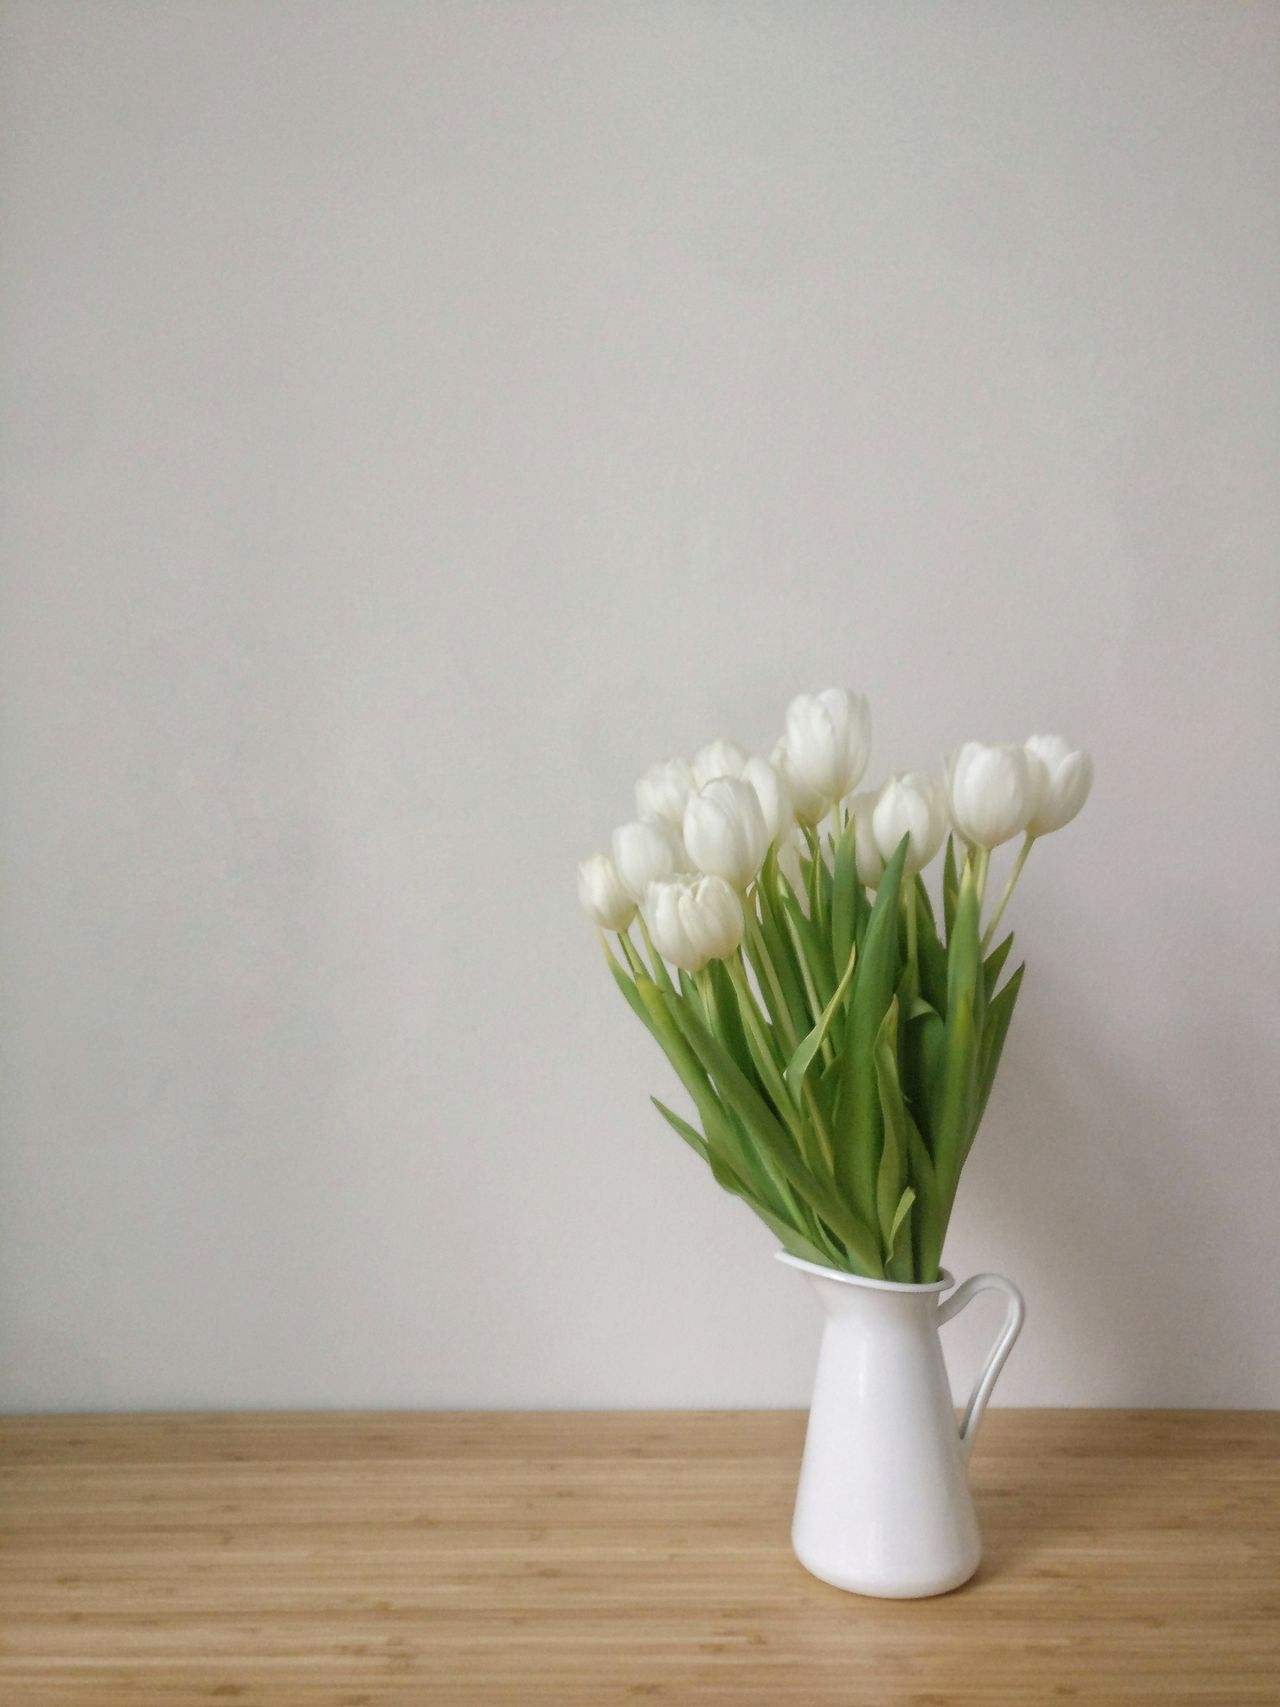 White Flower Vase Table White Color Freshness Indoors  Studio Shot Bunch Of Flowers No People Plant Nature Domestic Room Bouquet Flower Head Flower Arrangement Day